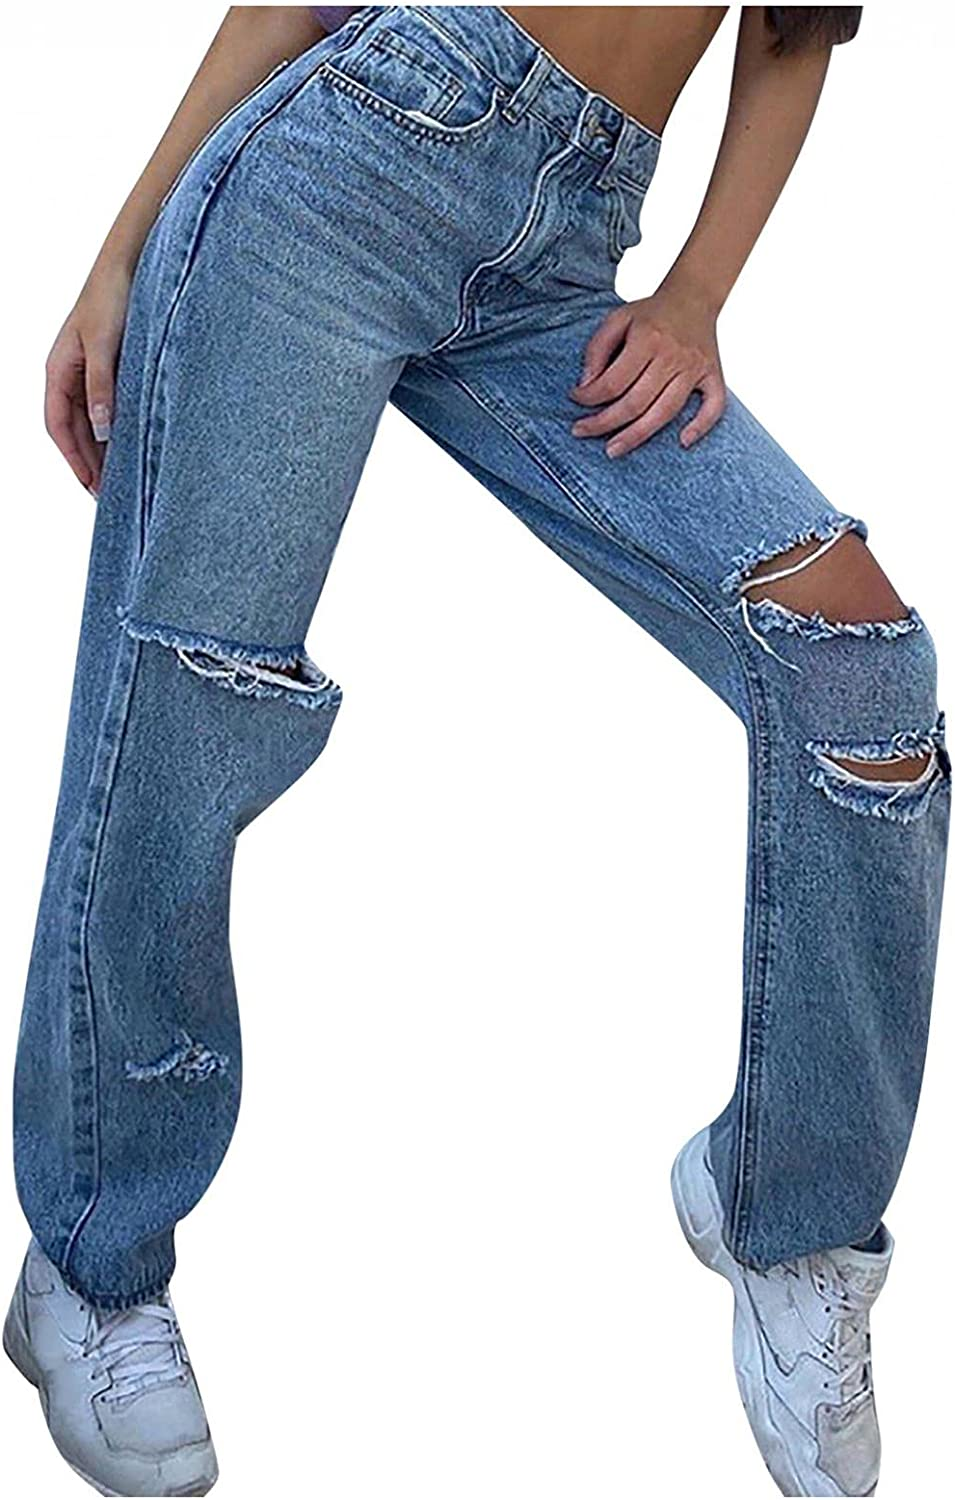 Aiouios Jeans for Women Y2K Fashion High Waisted Stretch Ripped Hole Jeans Distressed Denim Pants Vintage Streetwear